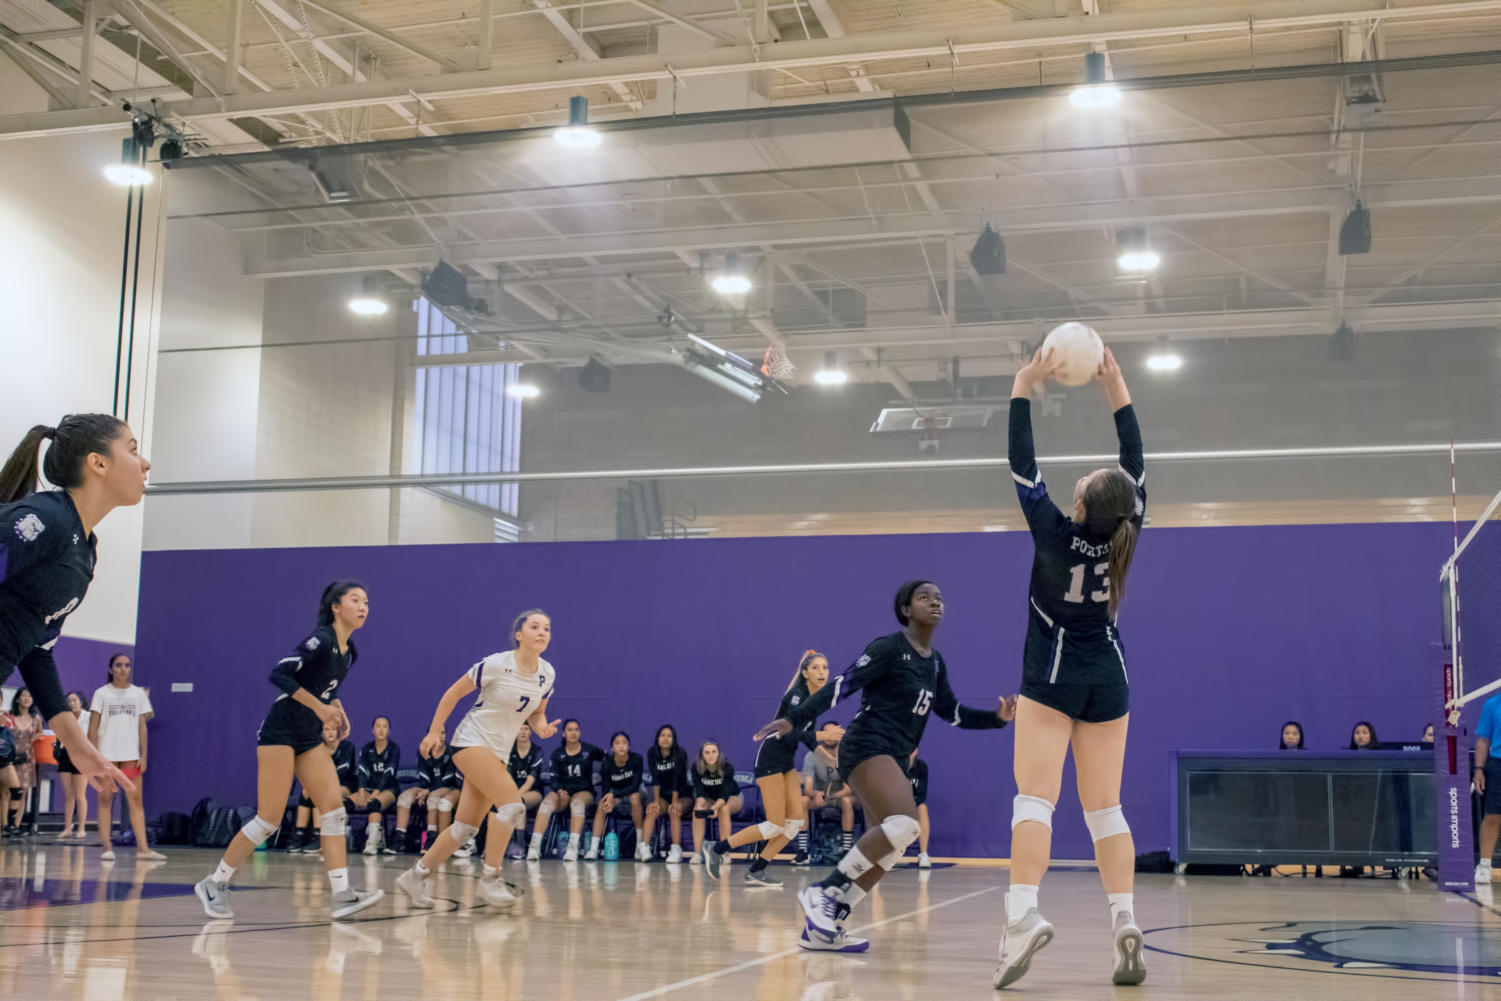 Junior and co-captain Faith DeNeve sets up a play for senior and middle blocker Arielle Hightower; the team has been focusing on setting up a kill through the middle during practices, but such plays require a nearly perfect pass and set, according to head coach Heidi Martasian.